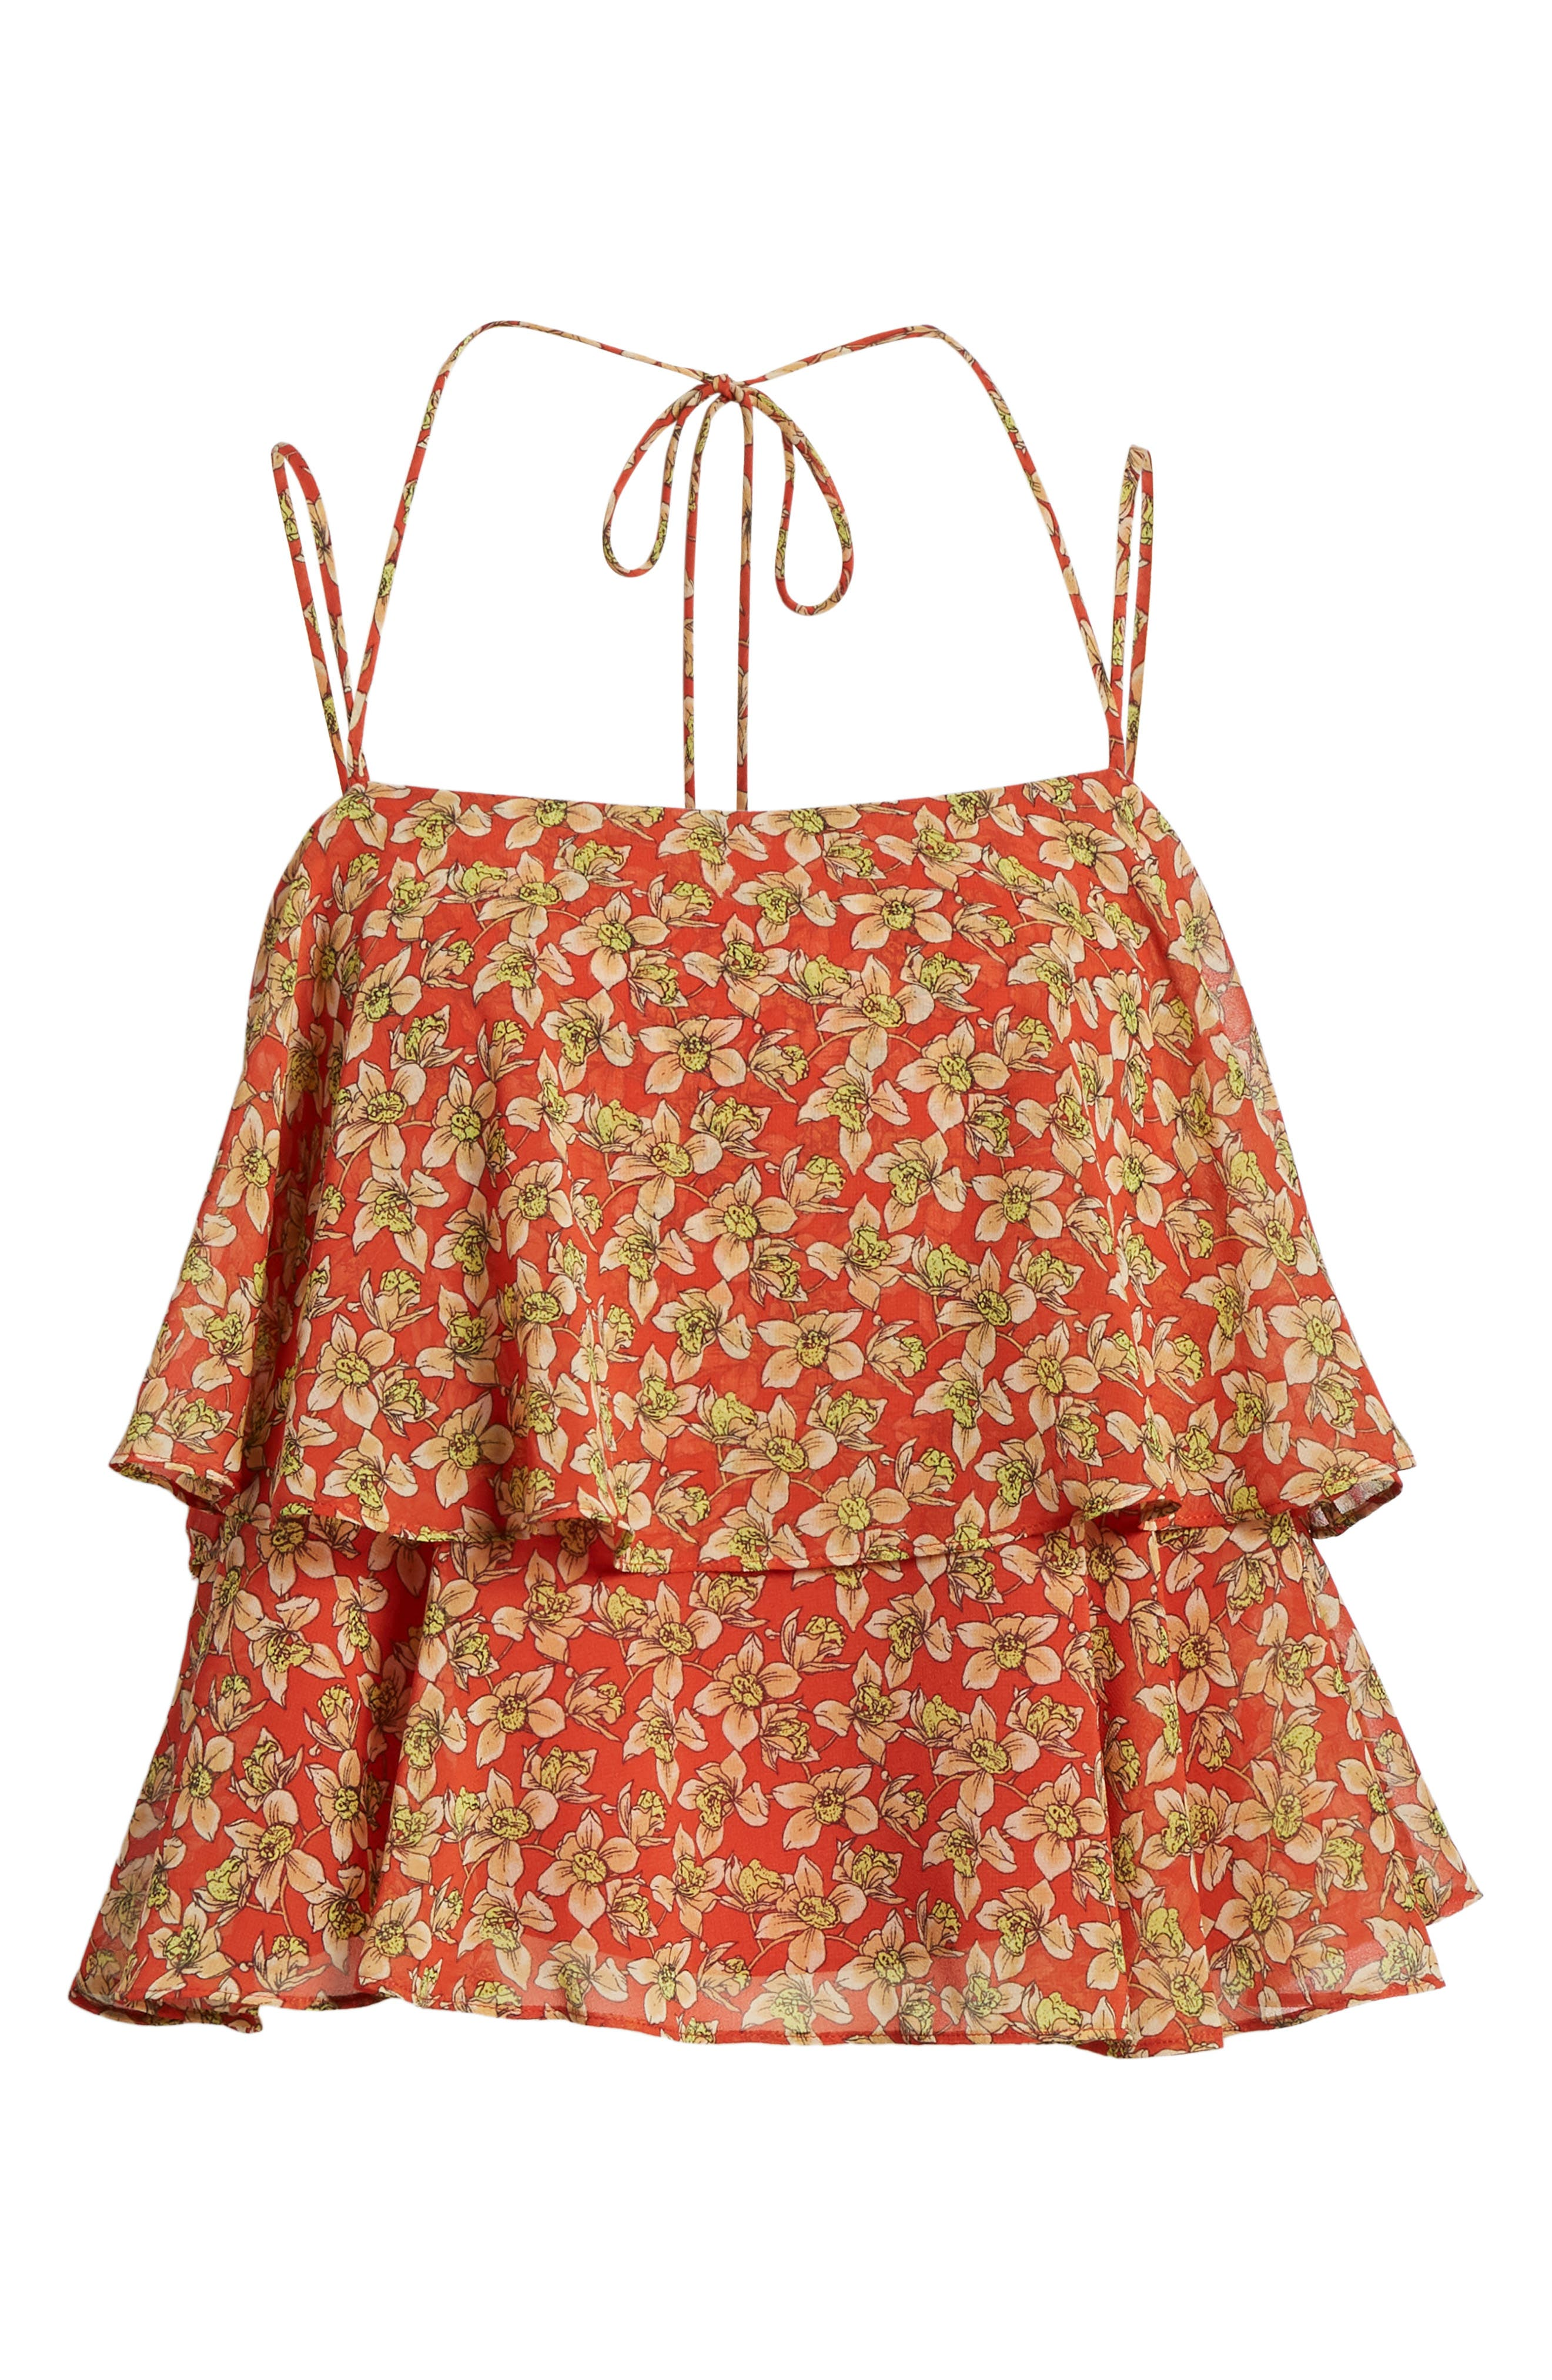 Cynthia Floral Tiered Top,                             Alternate thumbnail 7, color,                             603